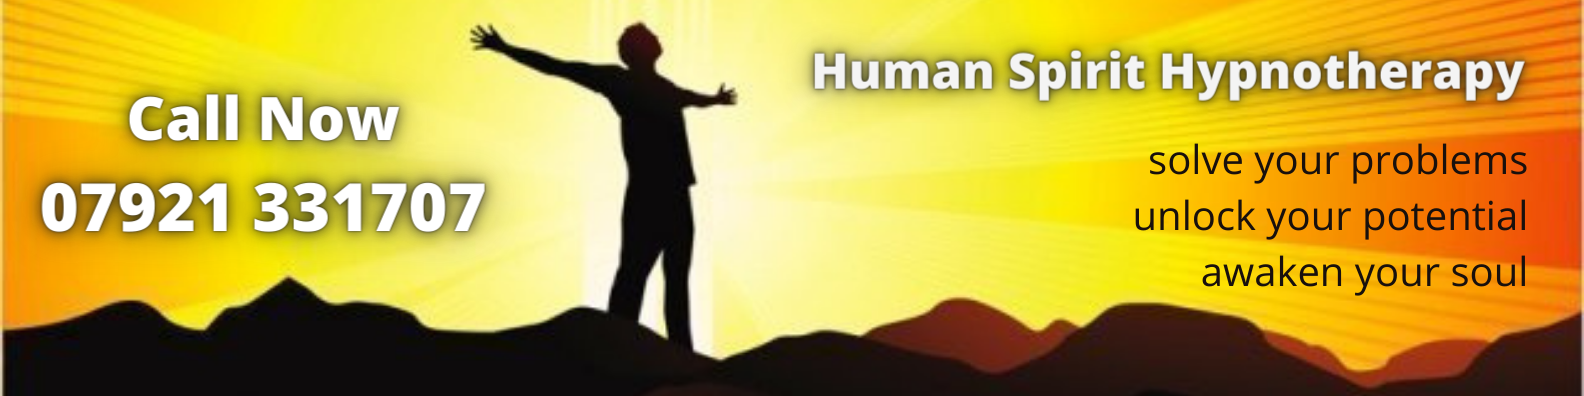 spiritual awakening: man with outstretched arms in silhouette